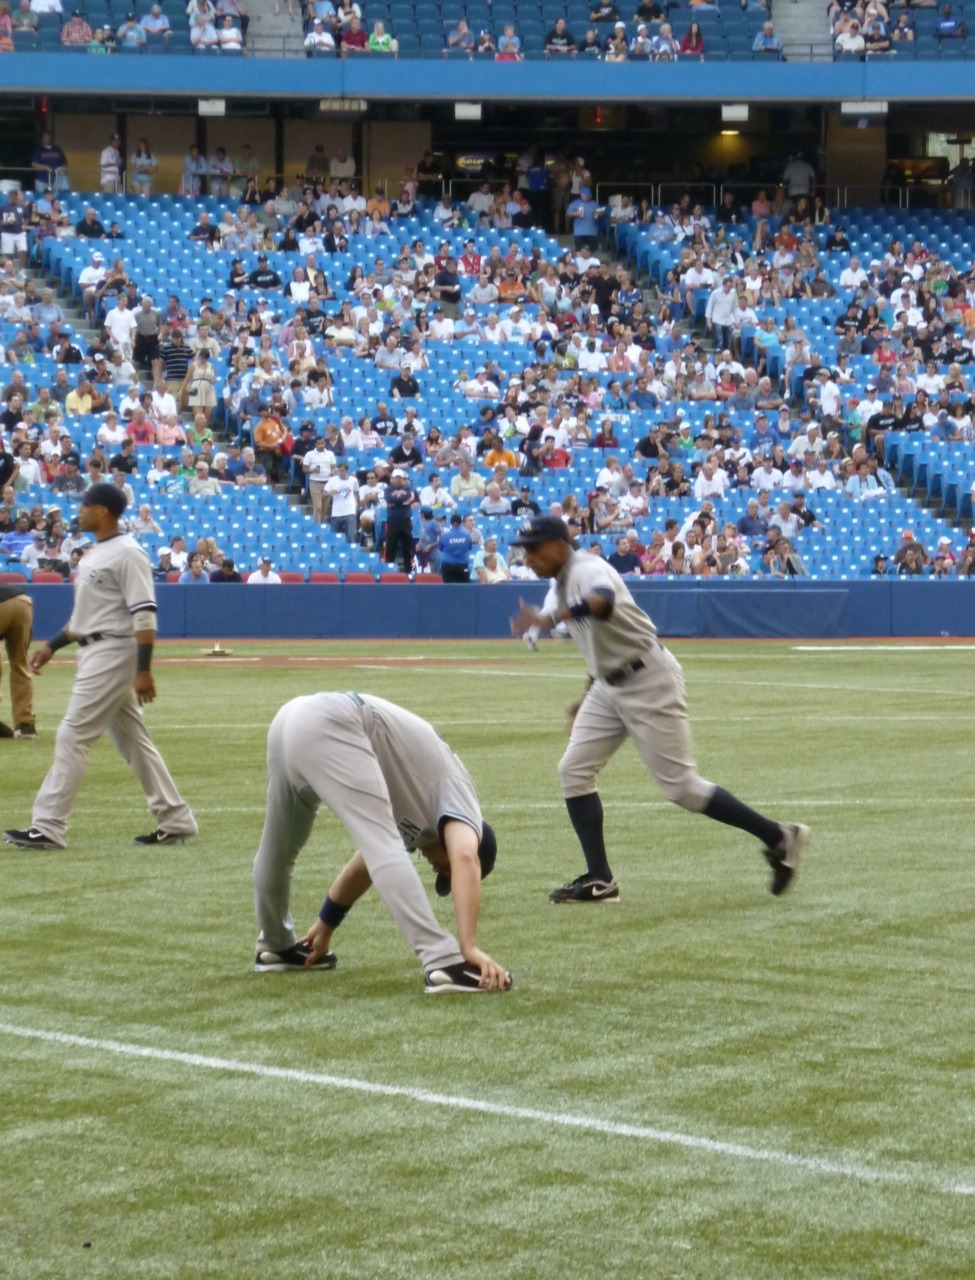 Teixeira stretching at Le SkyDome.